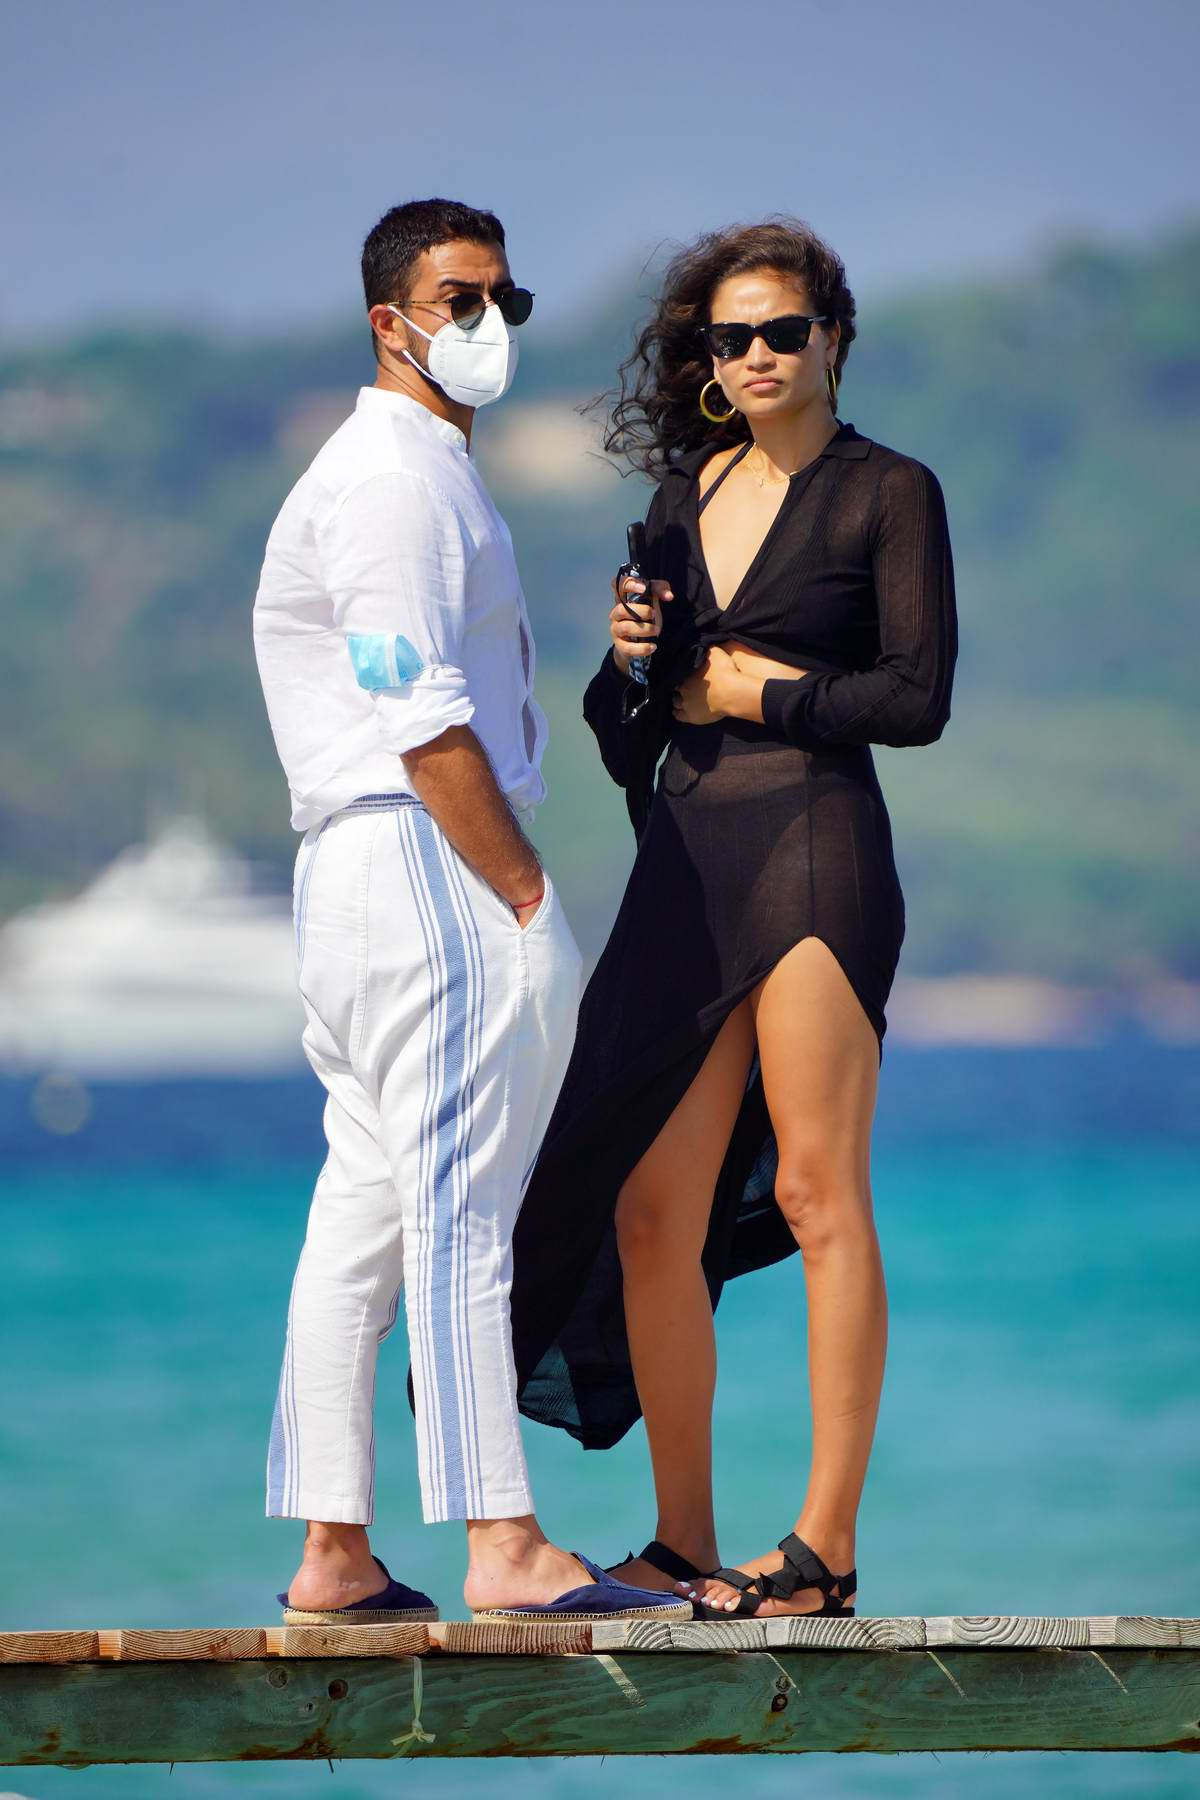 Shanina Shaik looks stunning in black while out for lunch with boyfriend Seyed Payam Mirtorabi at Club 55 in Saint-Tropez, France